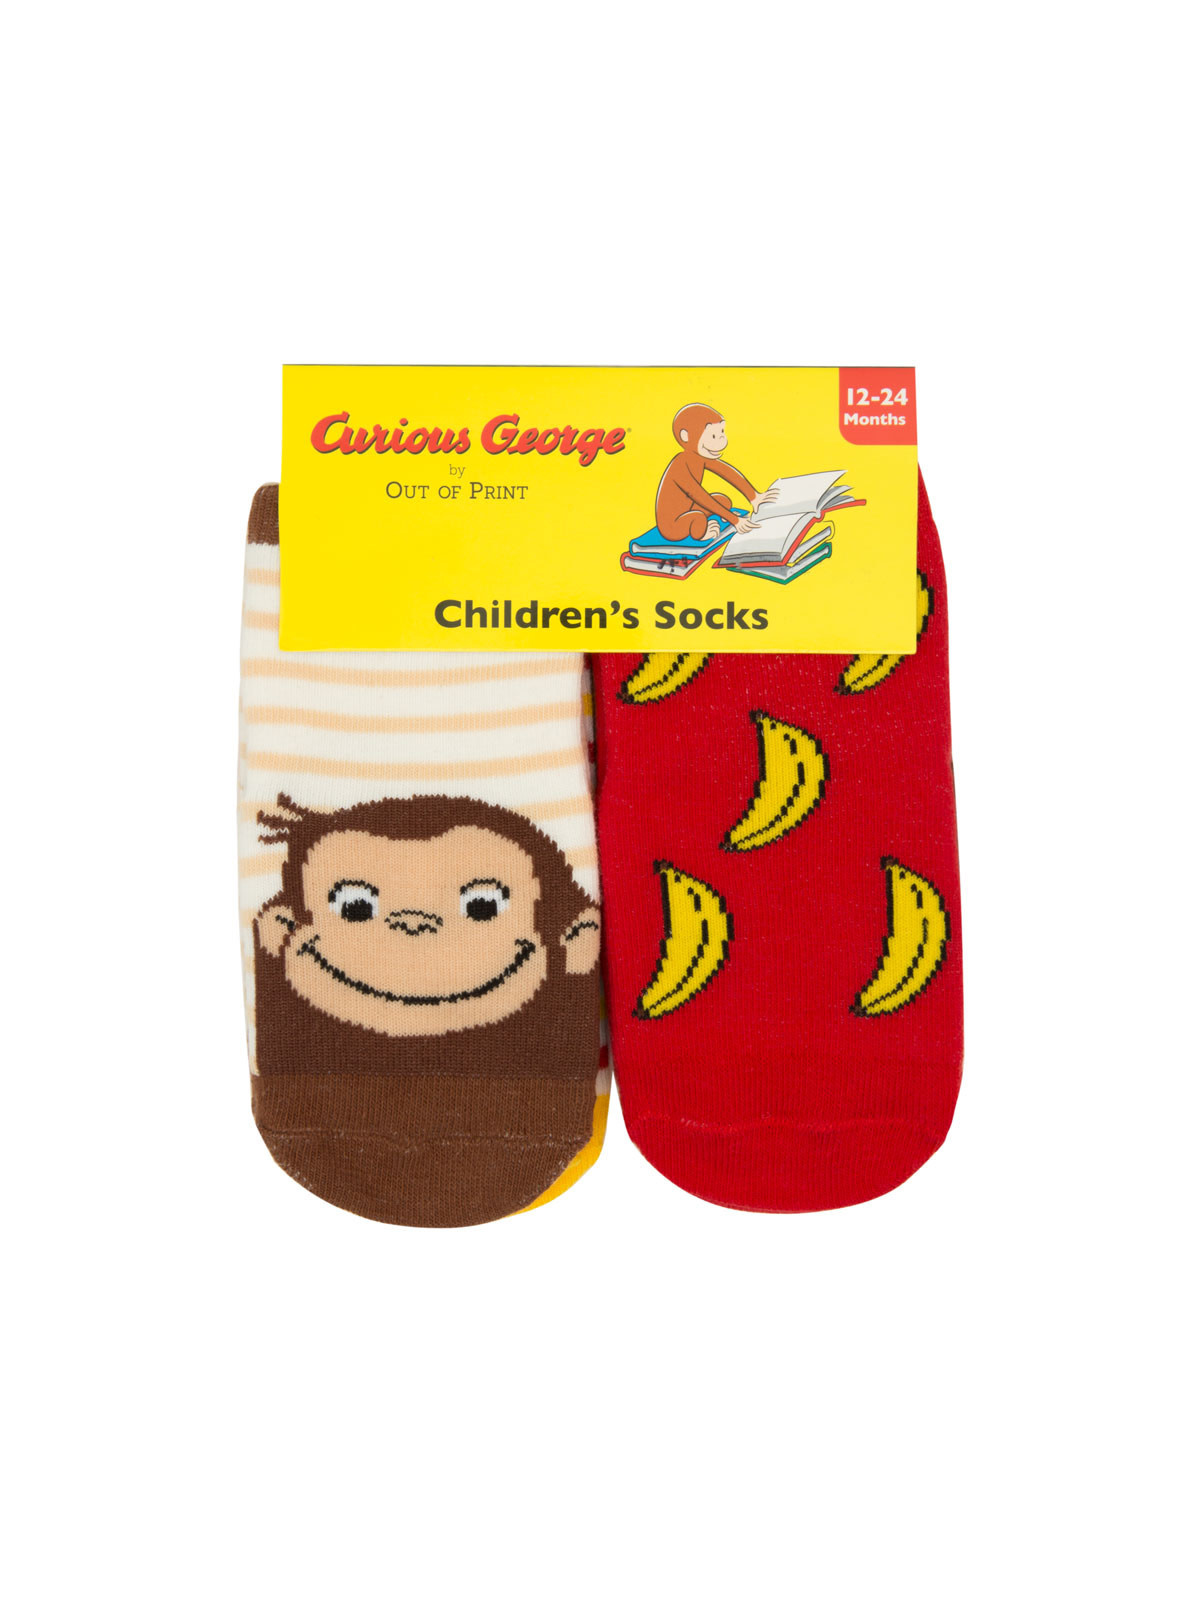 Curious George Kids Socks